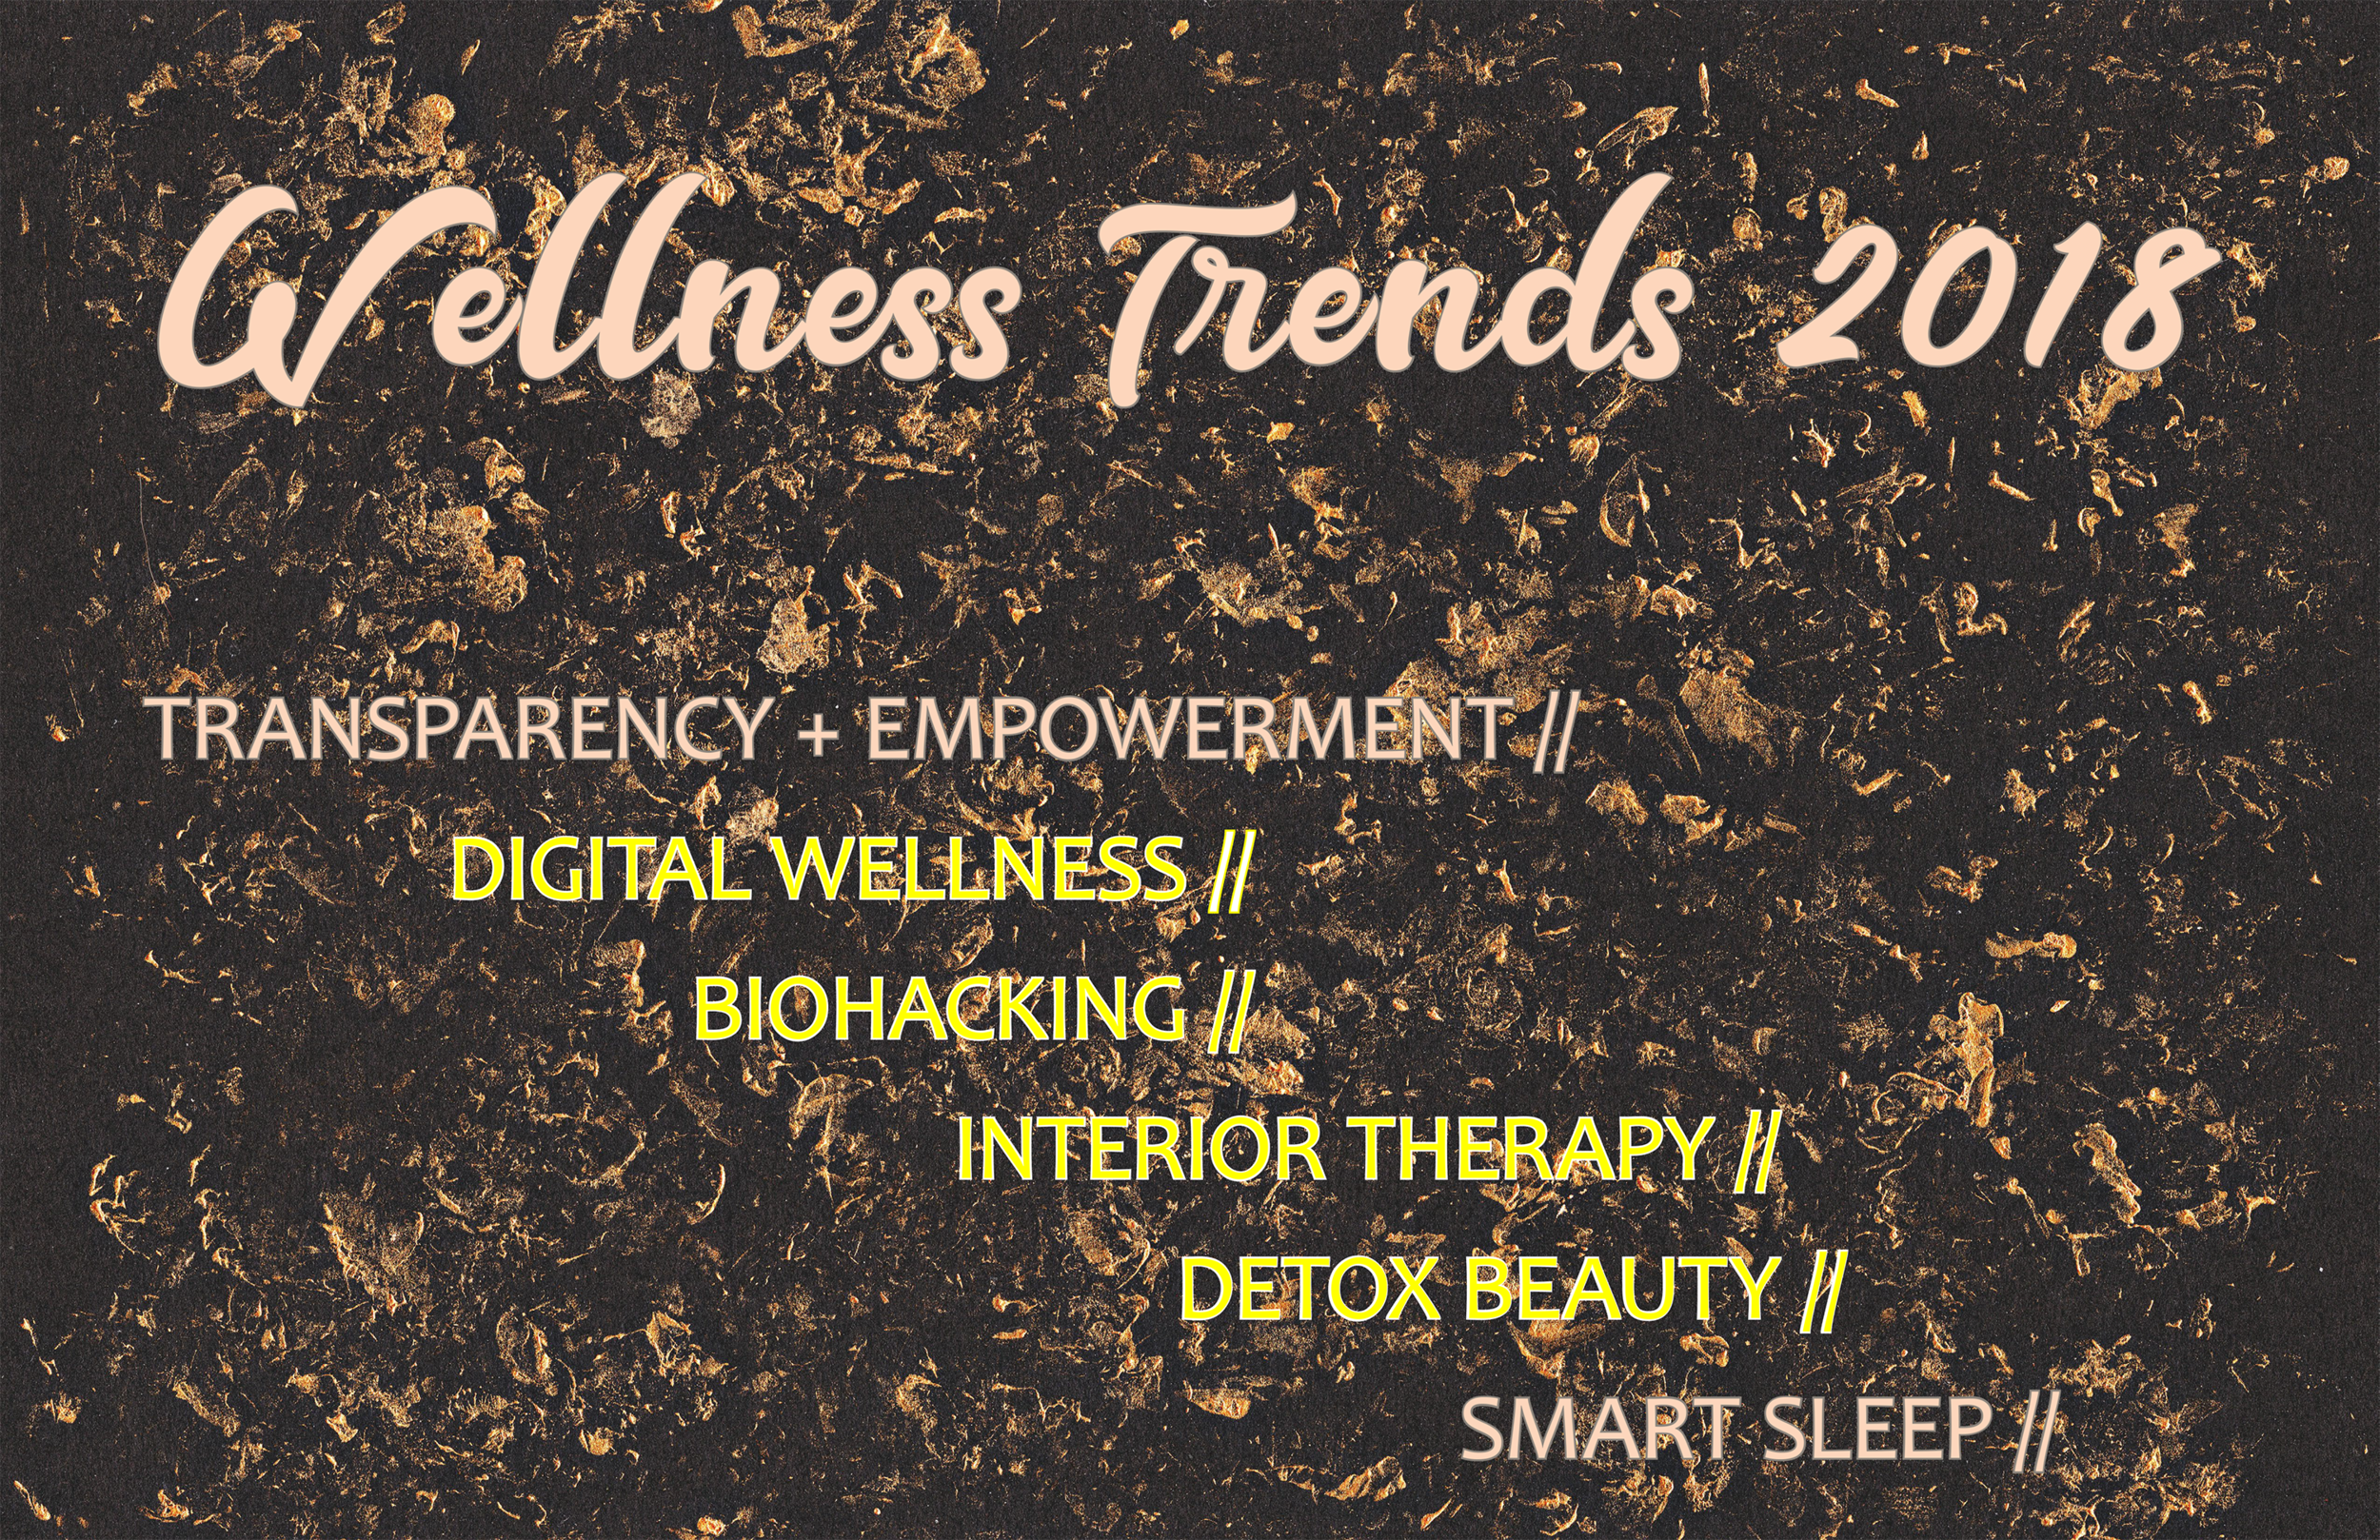 AM DEC WELLNESS TRENDS 2018-1 copy.png